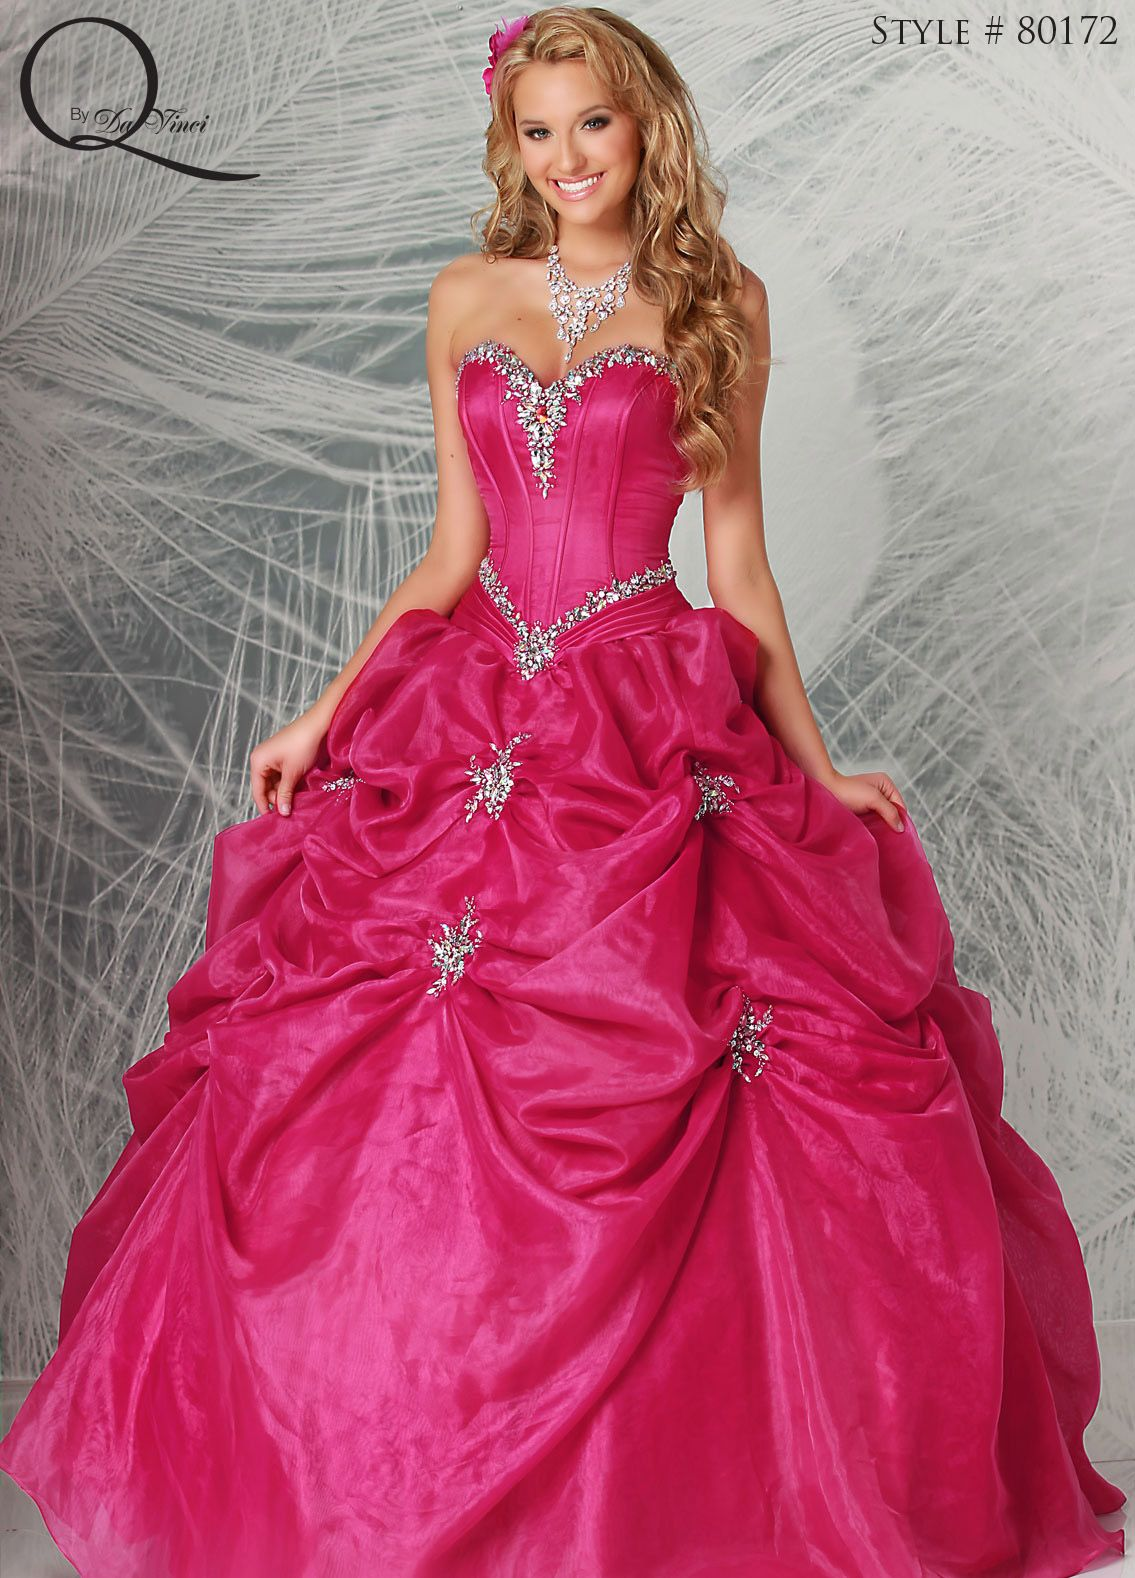 8f5dd336ab Hot Pink Quinceanera dress ~ Quinceanera dresses from Q by Davinci  quince  XV años. Available in Dark Fuchsia